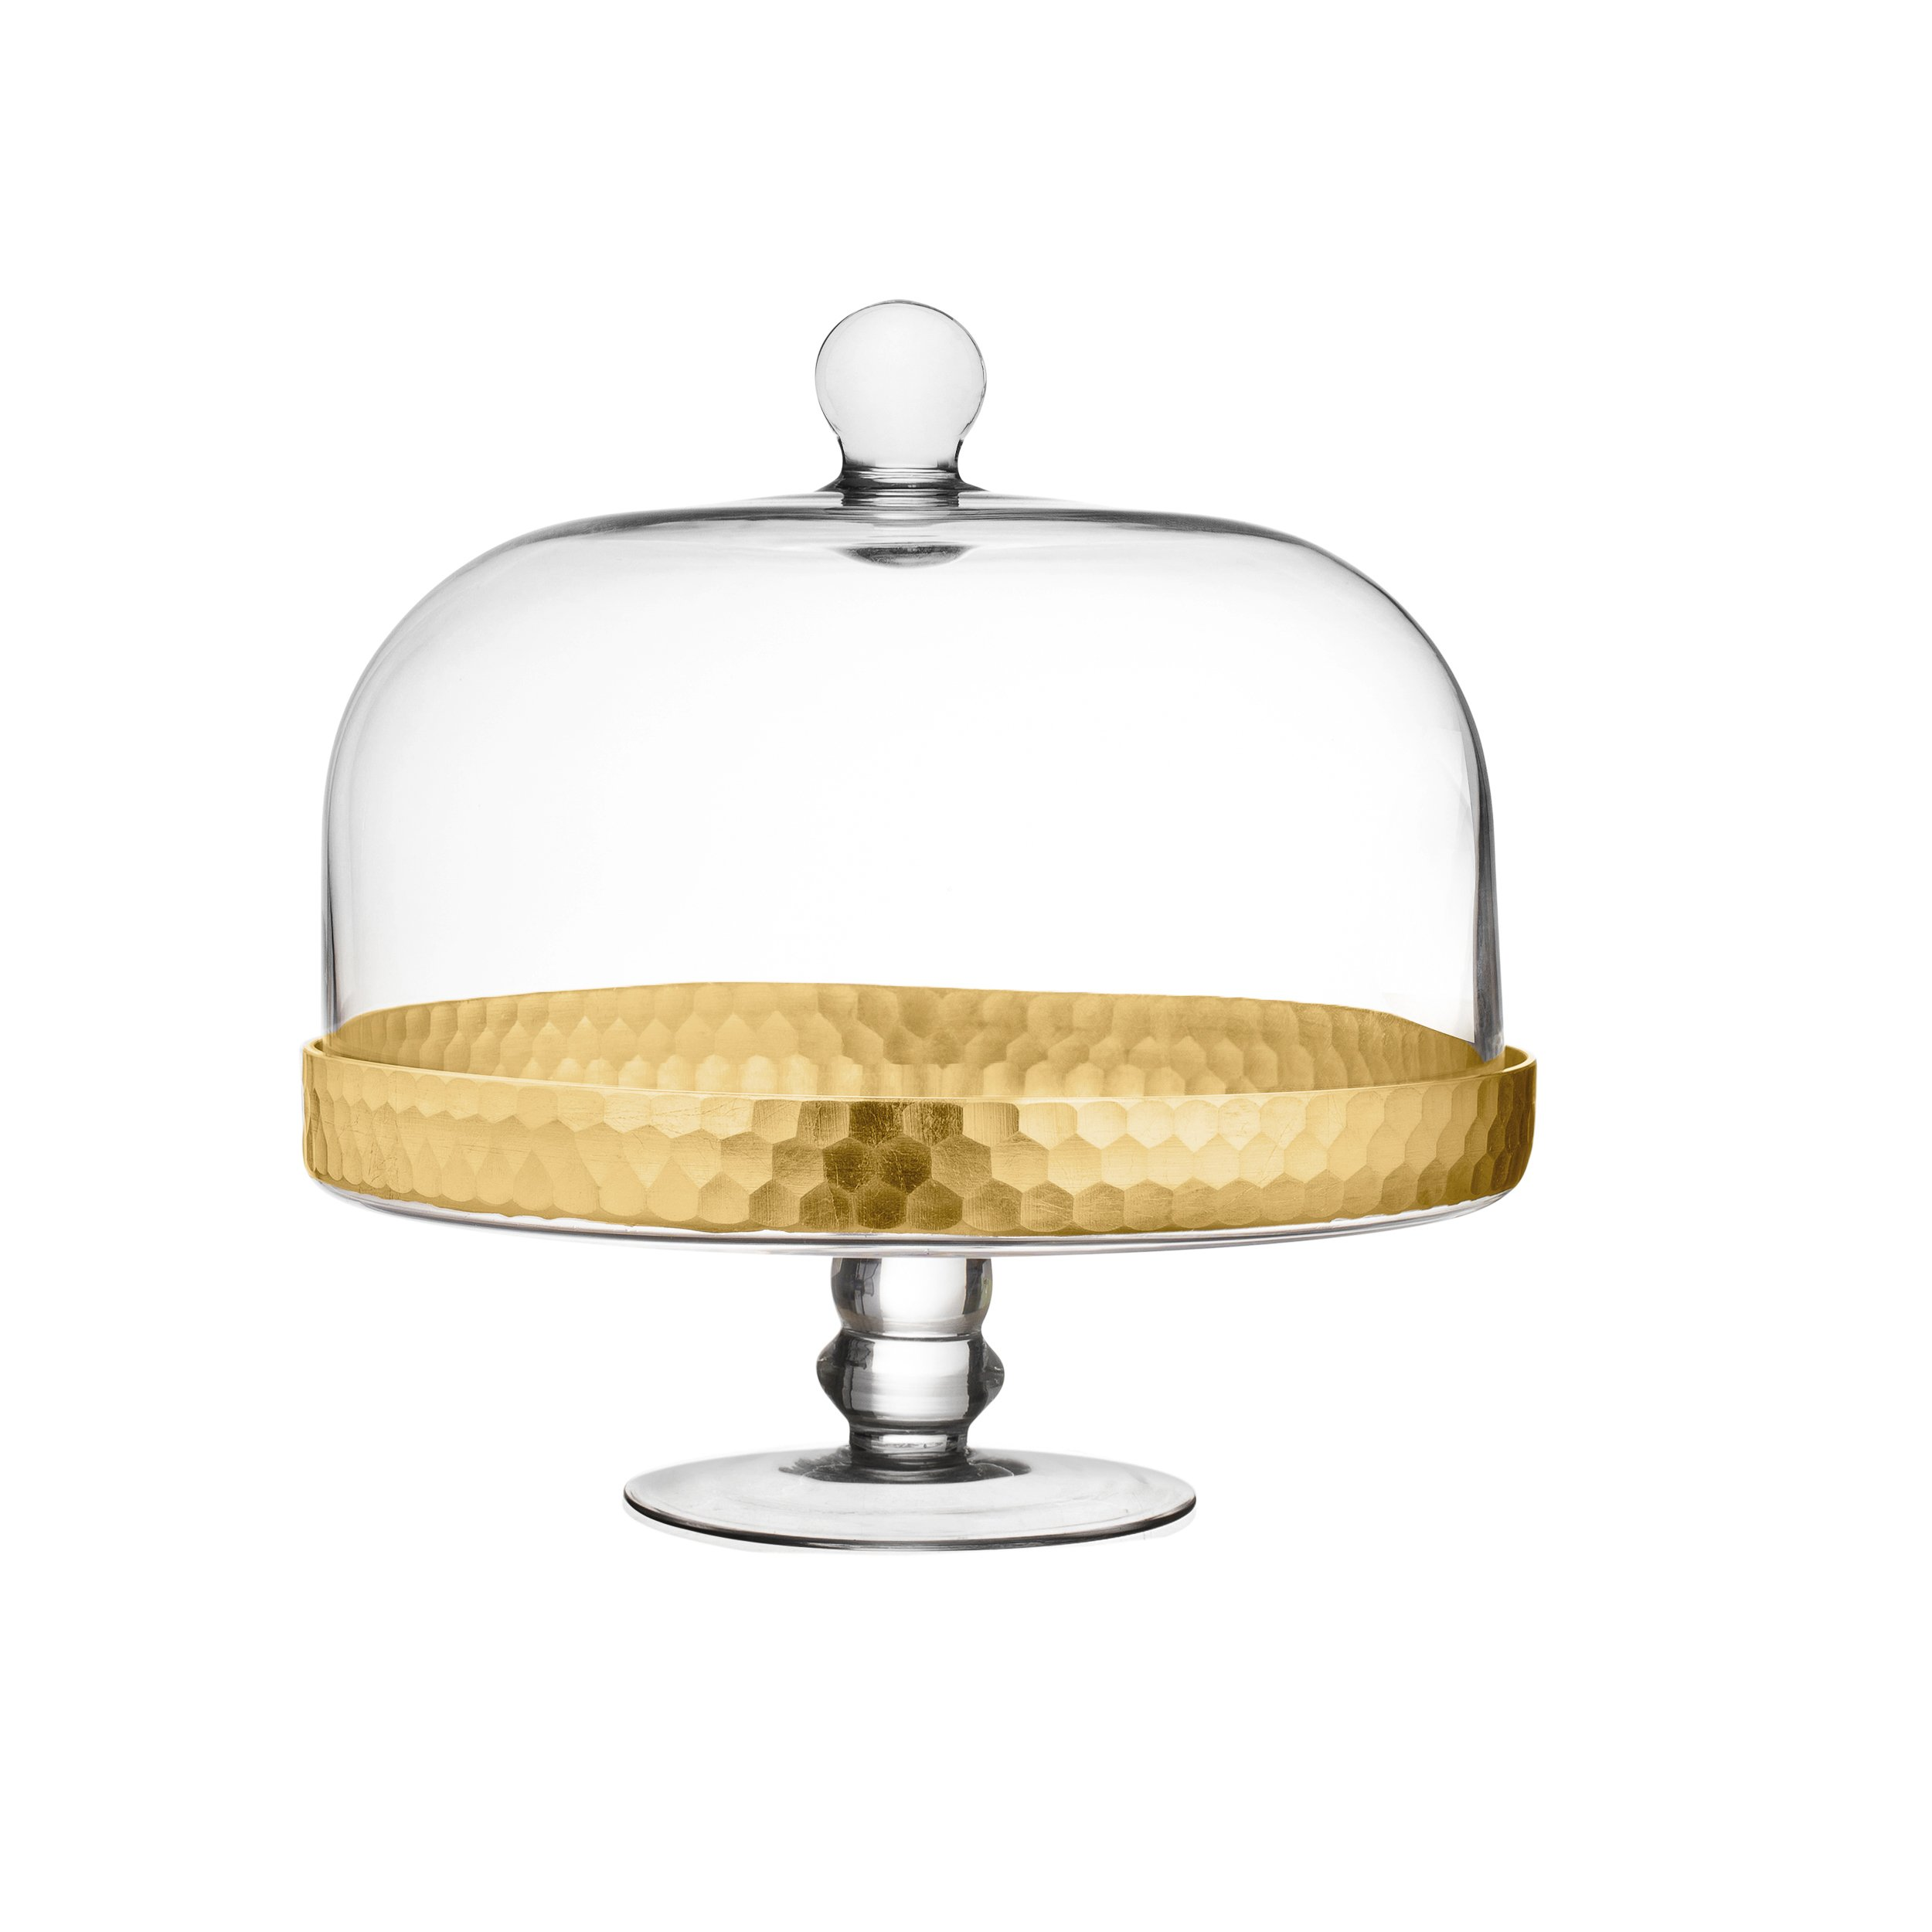 Fitz and Floyd 212705-PDCP Daphne Cake Plate with Dome Gold